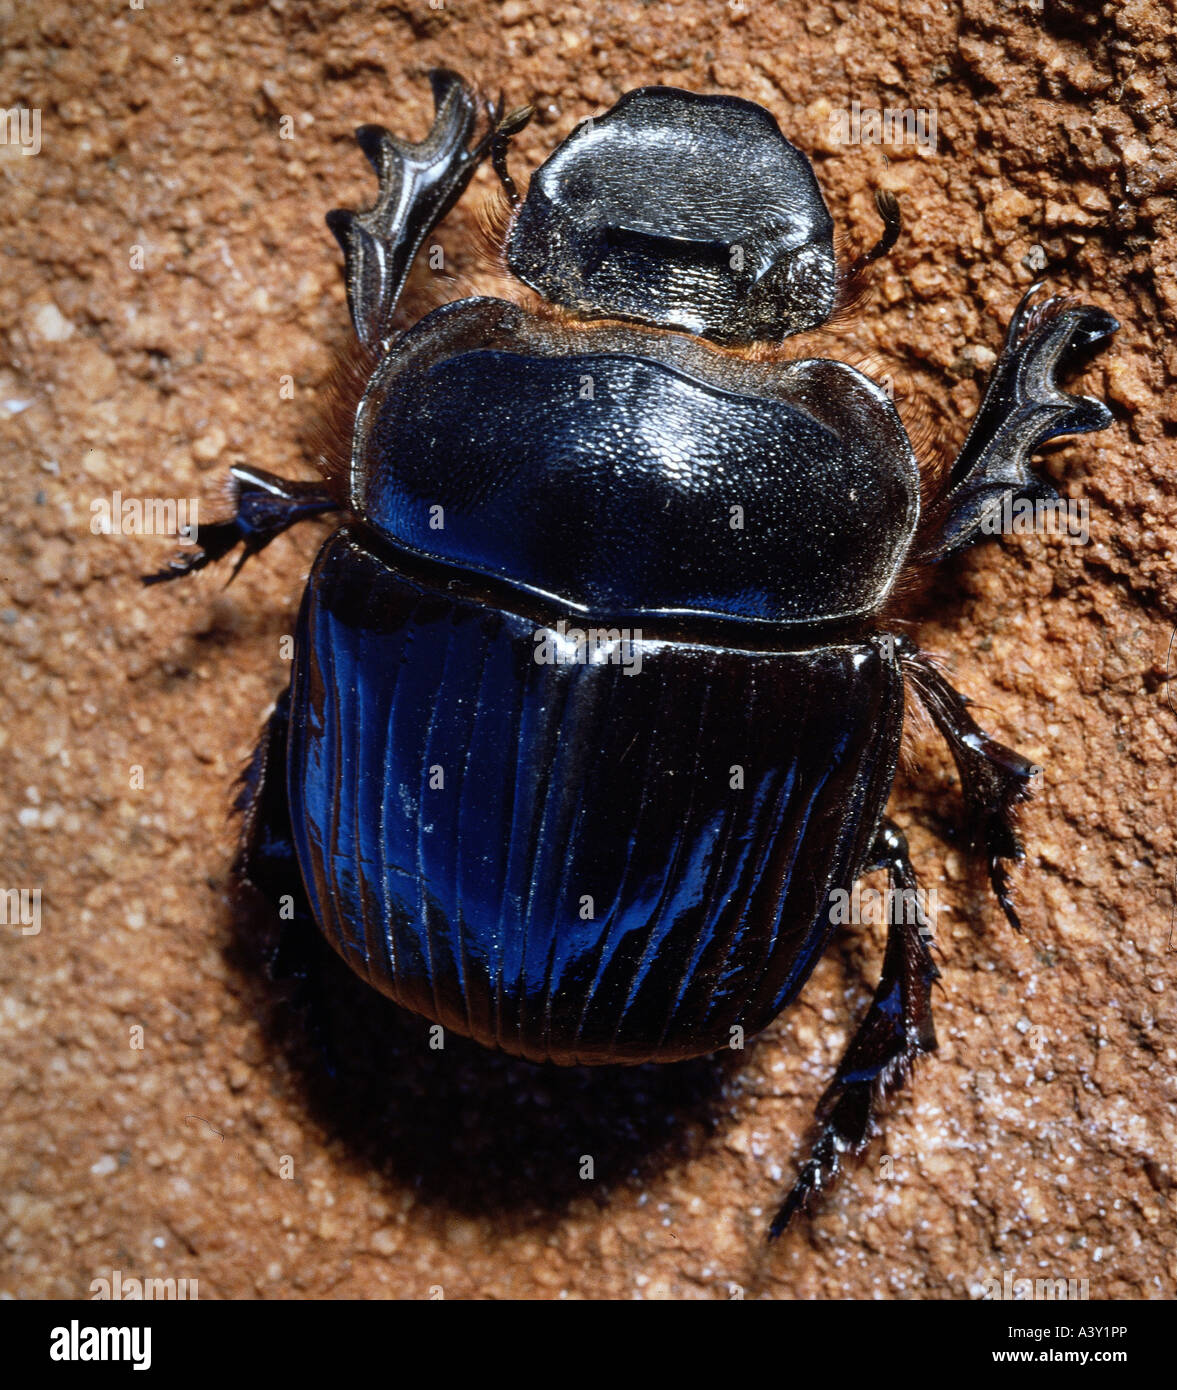 zoology / animals, insect, beetles, Dung Beetle, (Scarabaeus sacer), in sand, Kenya, distribution: Southern Europe, Stock Photo